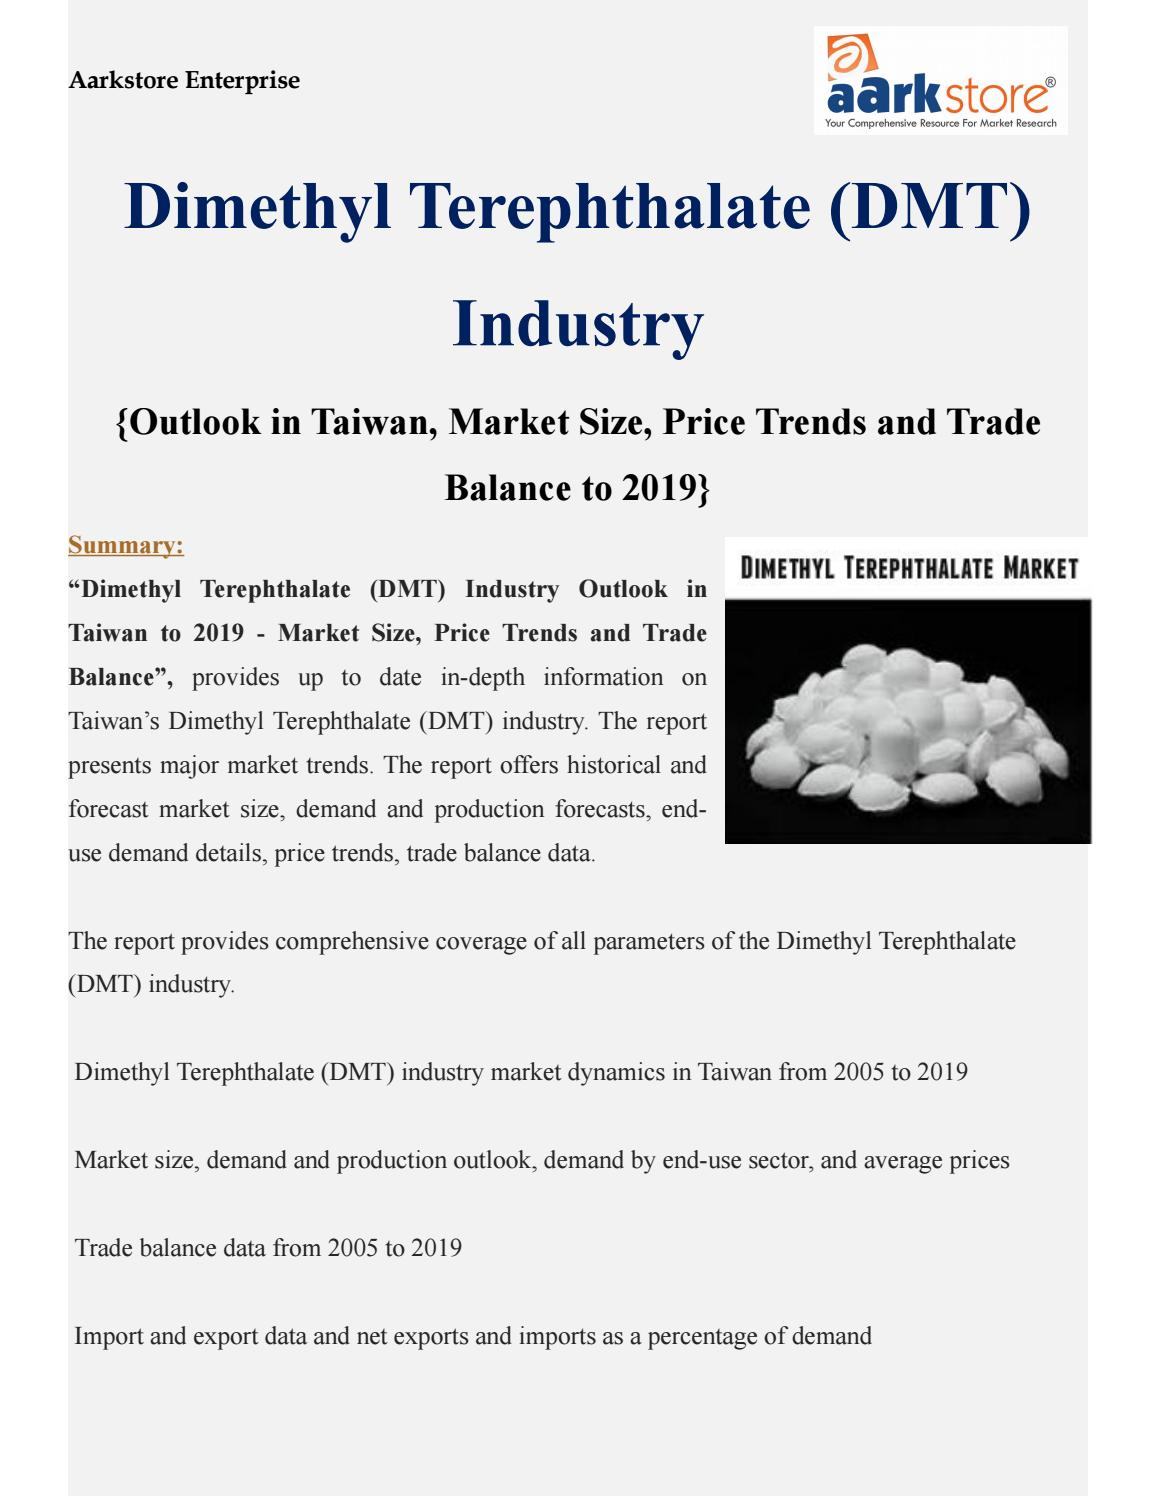 Dimethyl Terephthalate (DMT) Industry Outlook in Taiwan to